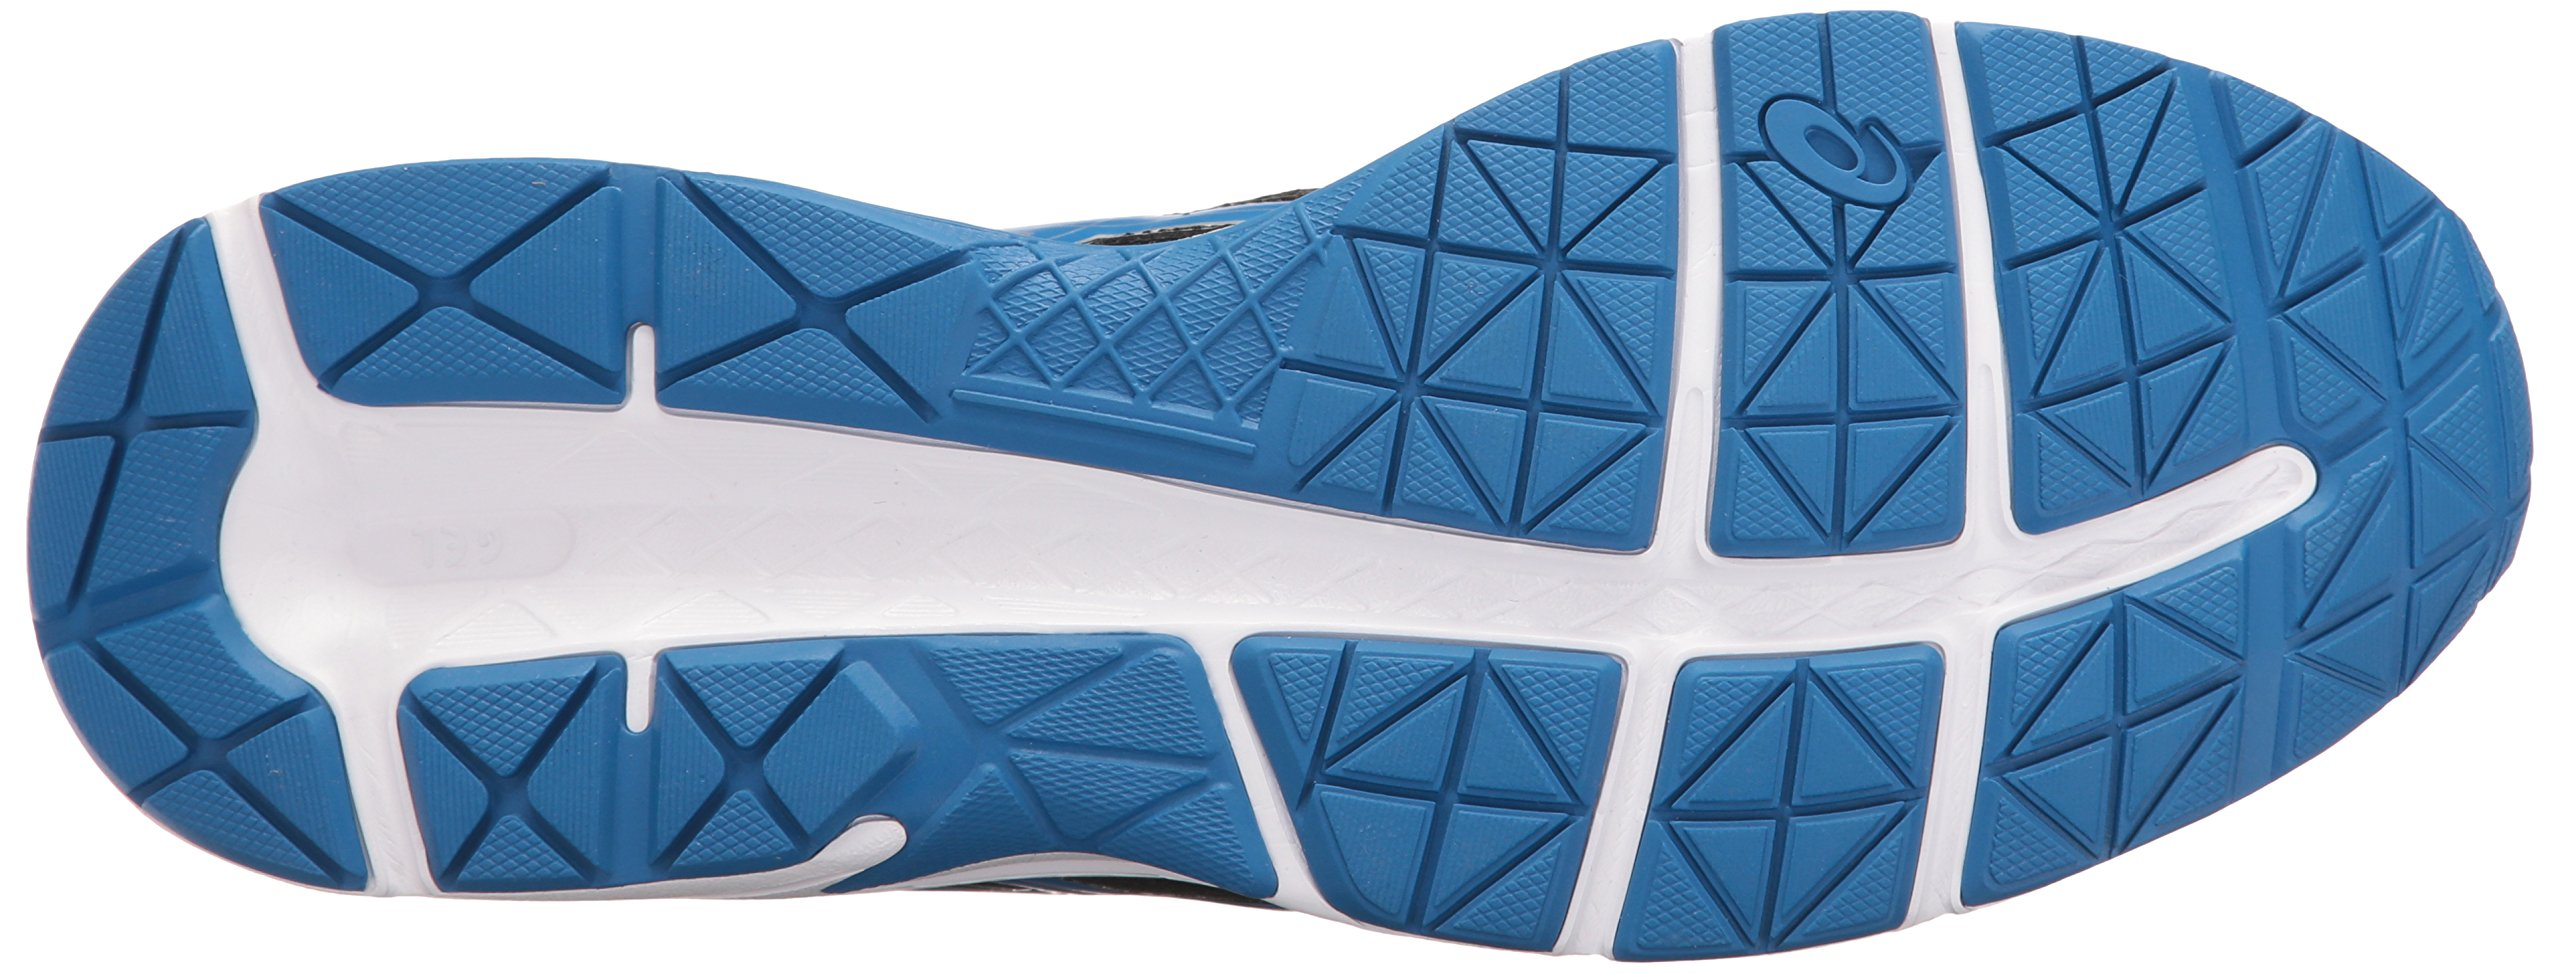 ASICS Men's Gel-Contend 4 Running Shoe, Silver/Classic Blue/Black, 7.5 M US by ASICS (Image #3)